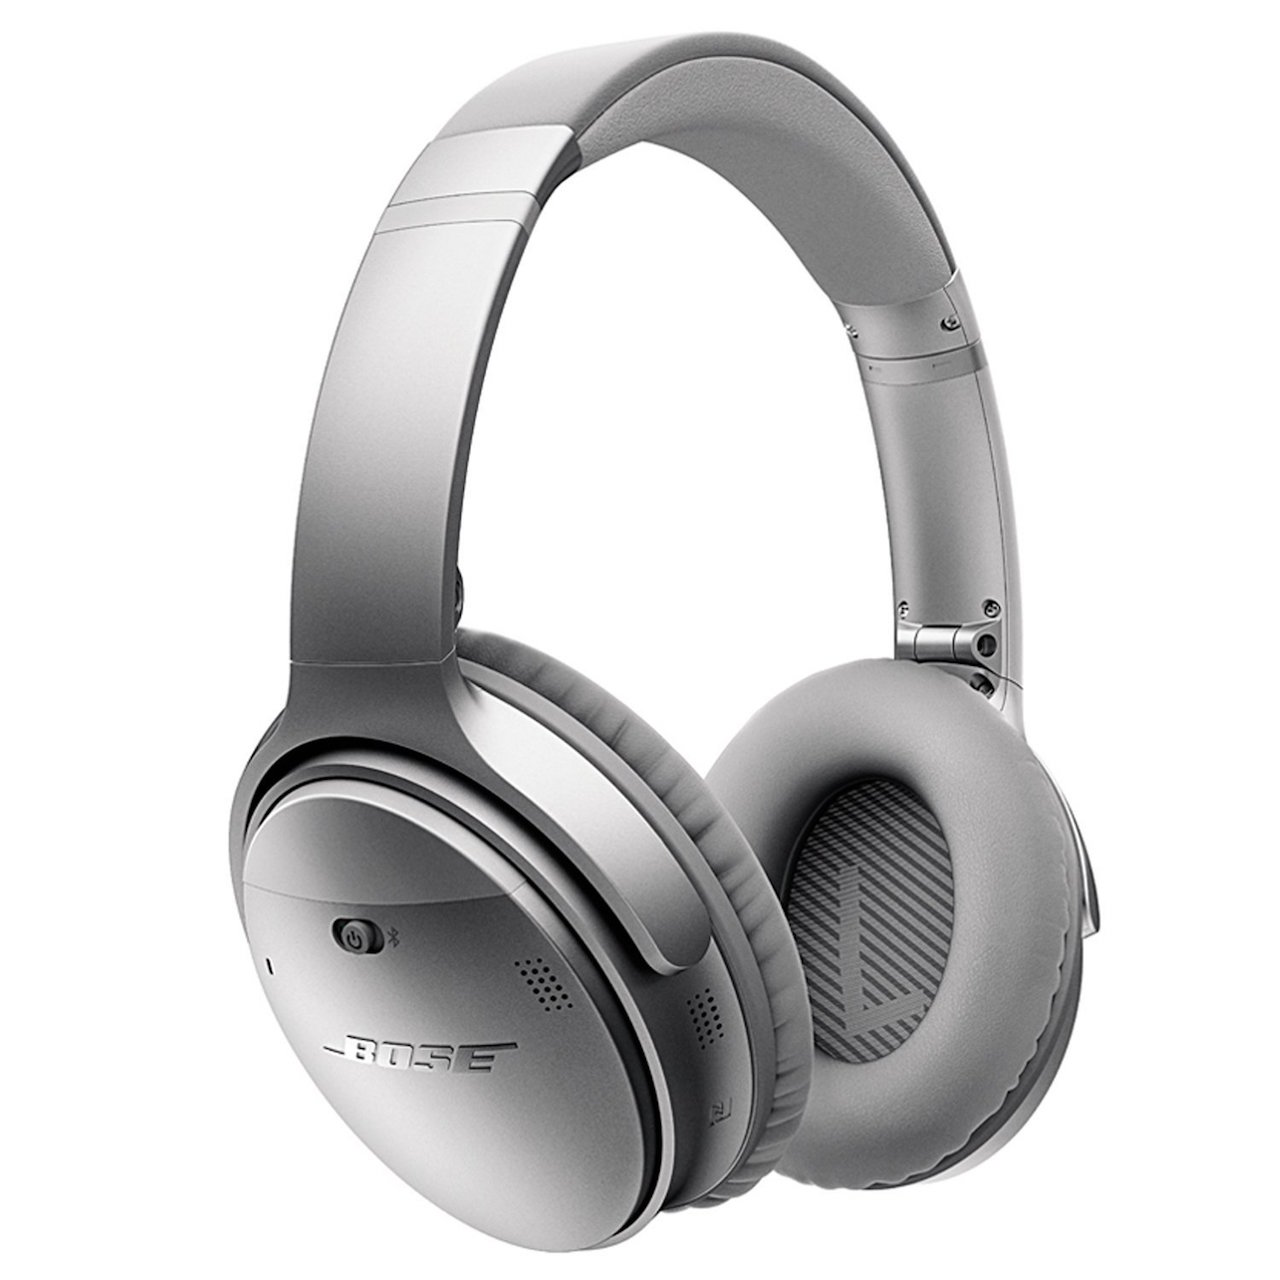 Bose QC35 in Silver. Noise Cancelling headphones.